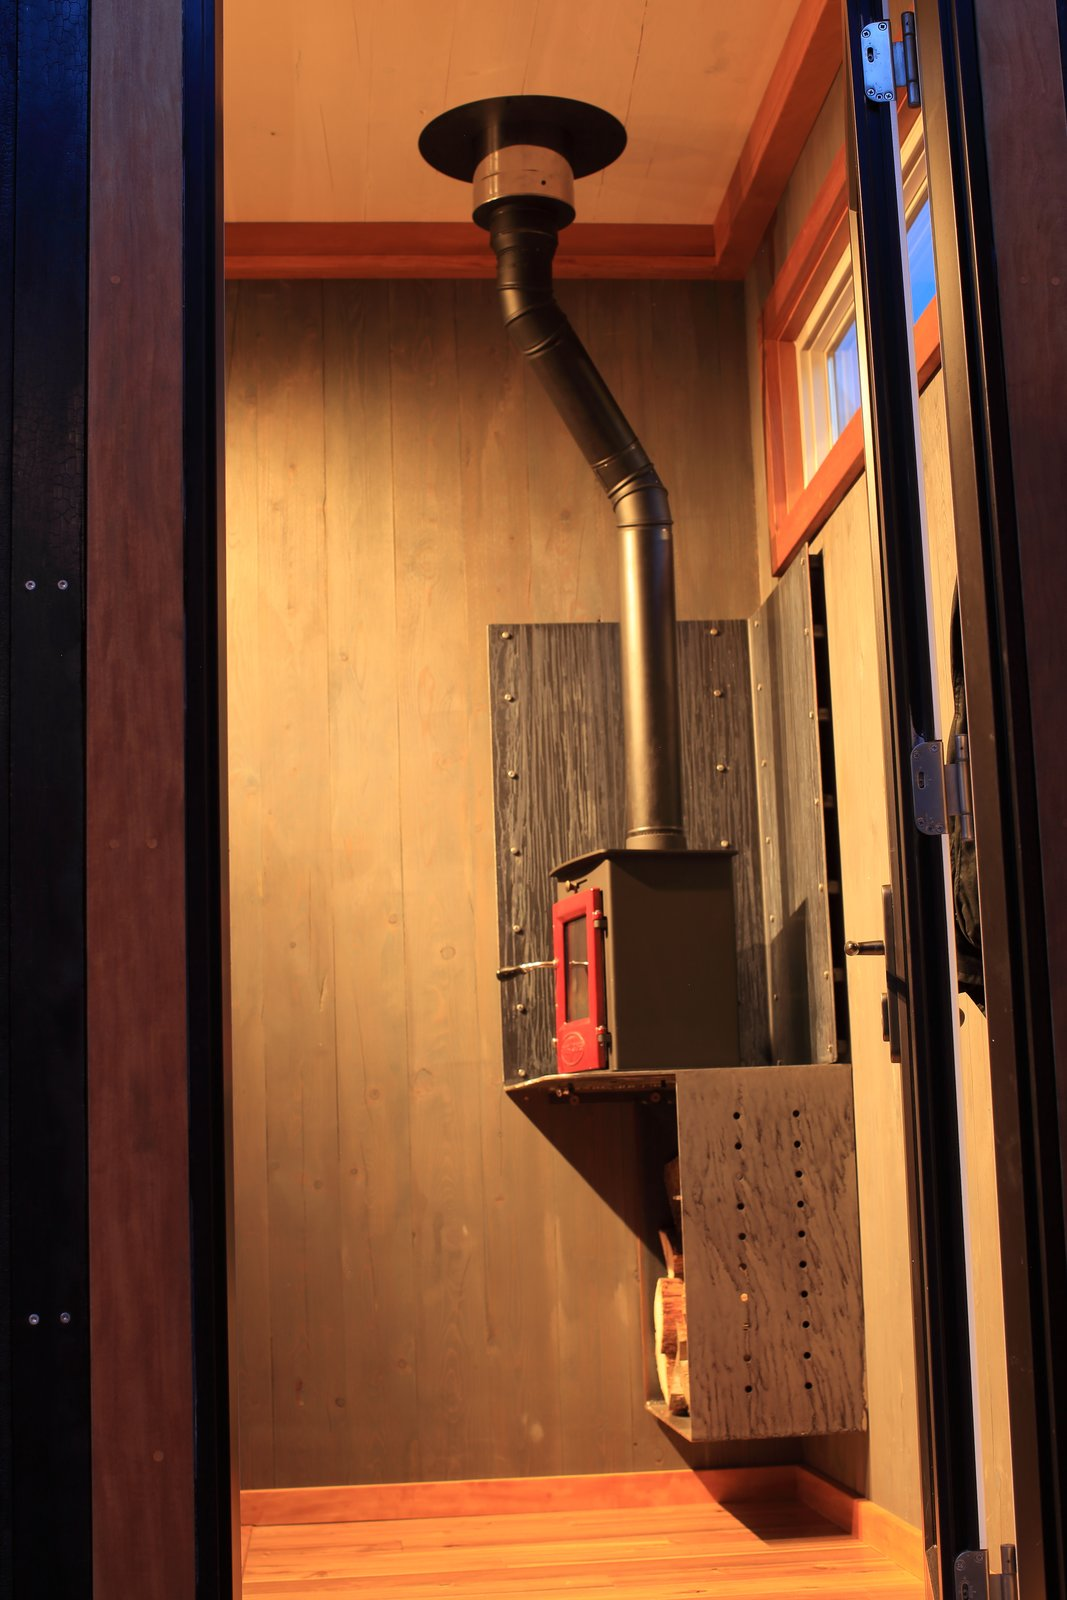 The Dwarf wood-burning stove by Utah's Tiny Wood Stoves won't overheat the small space. Because the solid cross-laminated-timber walls have the same structural strength throughout, the custom steel stand and wood box can hang directly off the wall. Tagged: Living Room, Wood Burning Fireplace, Track Lighting, and Ceiling Lighting. The Adirondack by Cubist Engineering